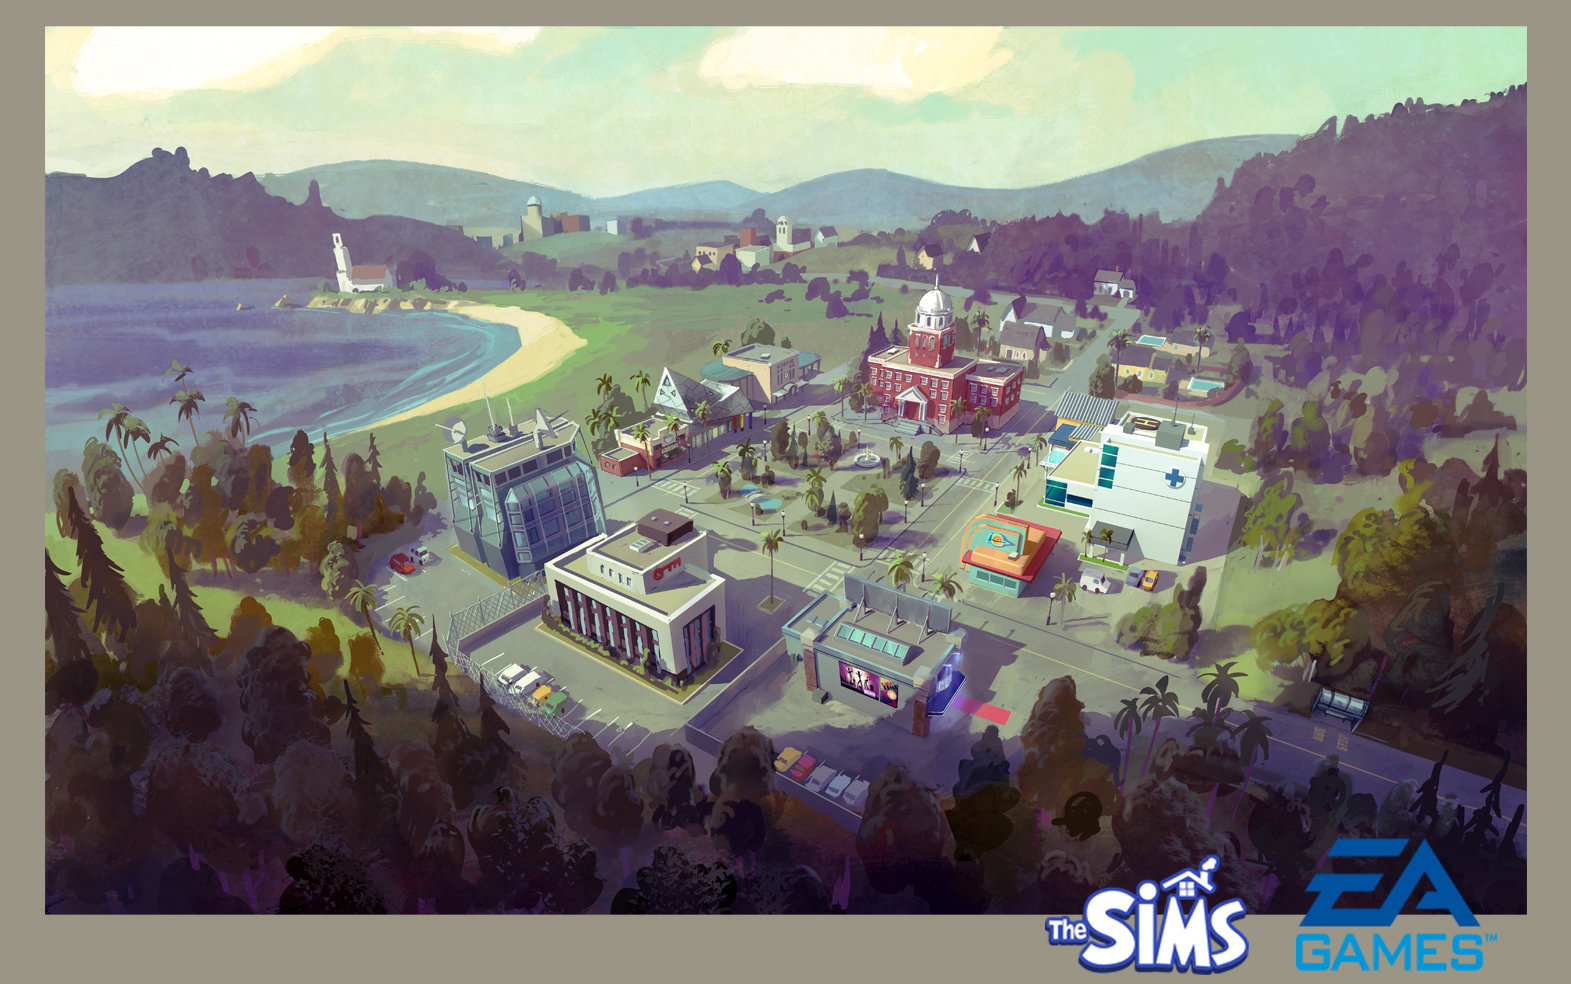 Concept work for the Sims